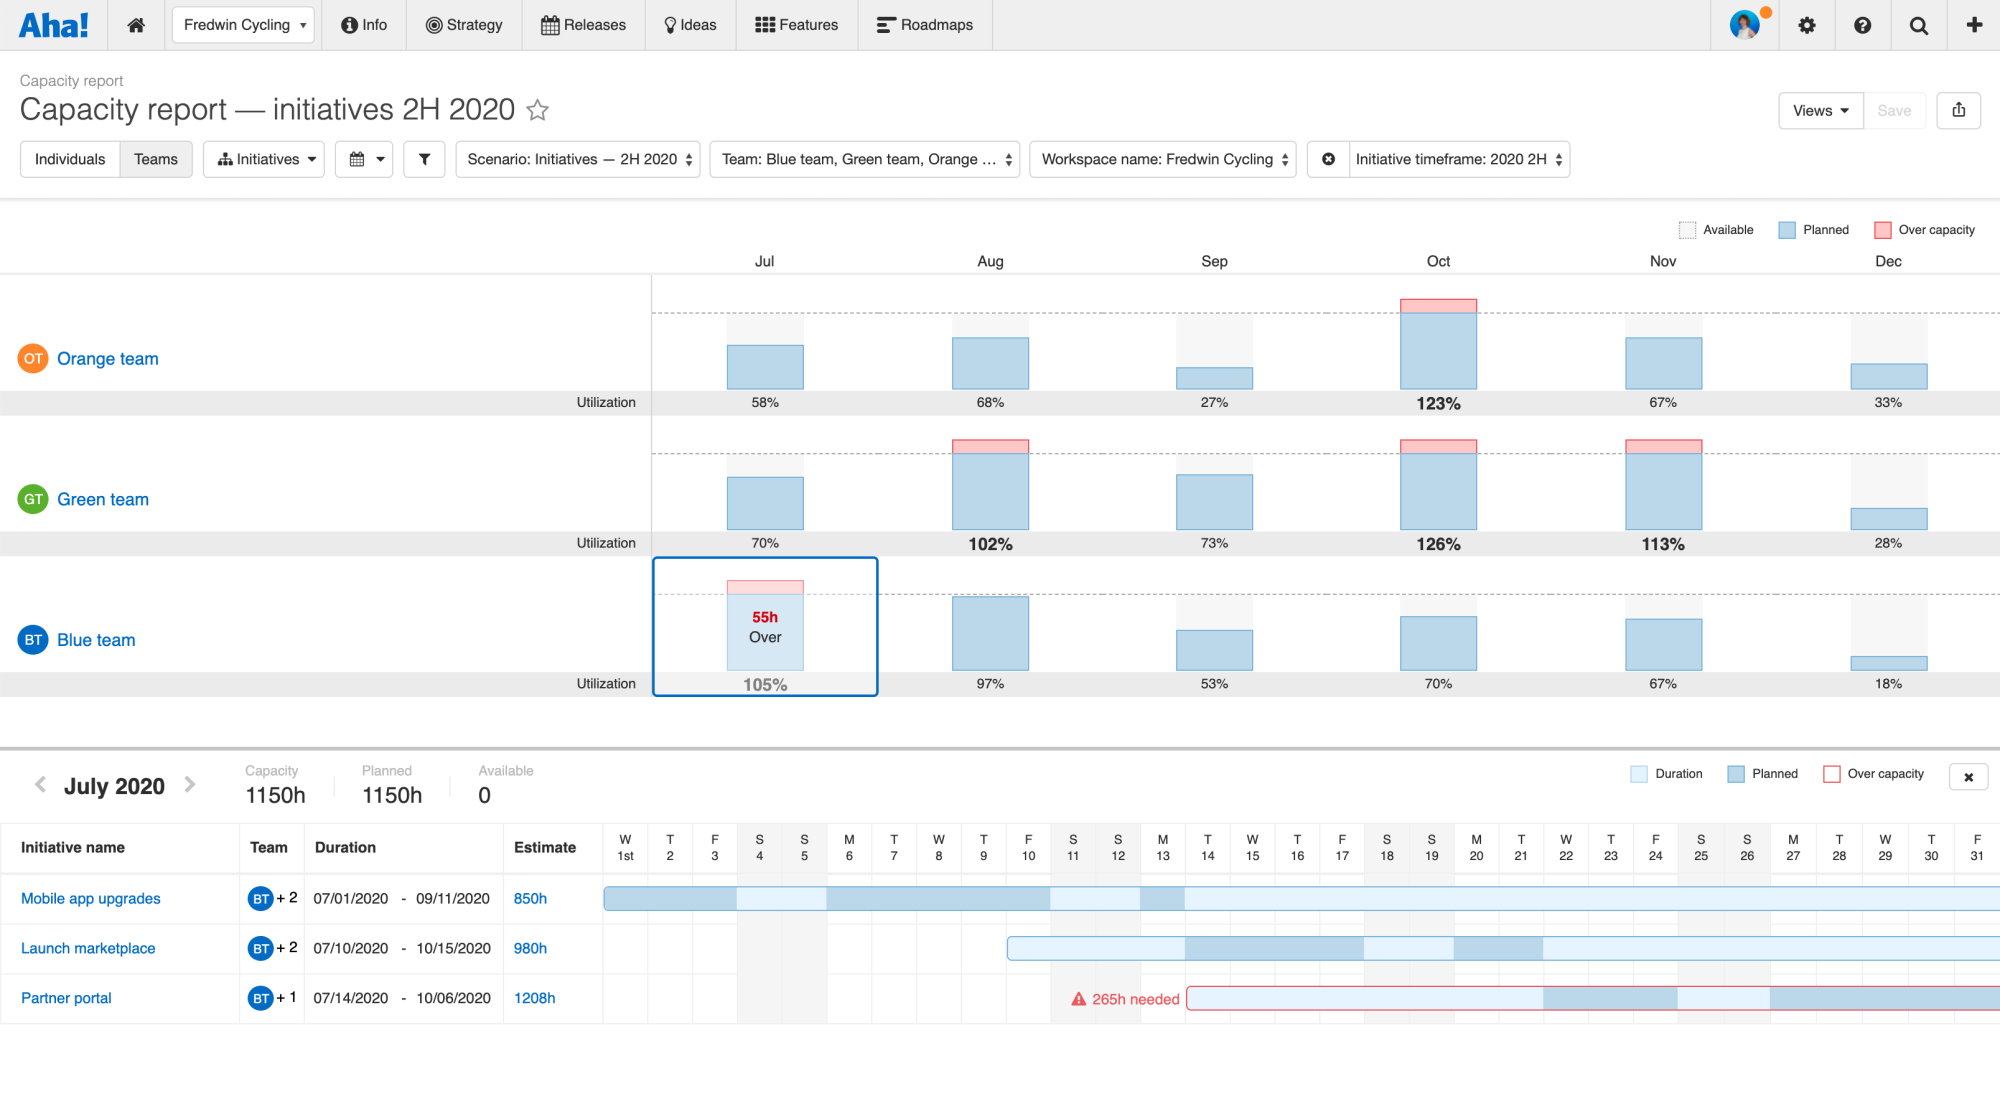 Visualize team workloads on the capacity report and compare scenarios.